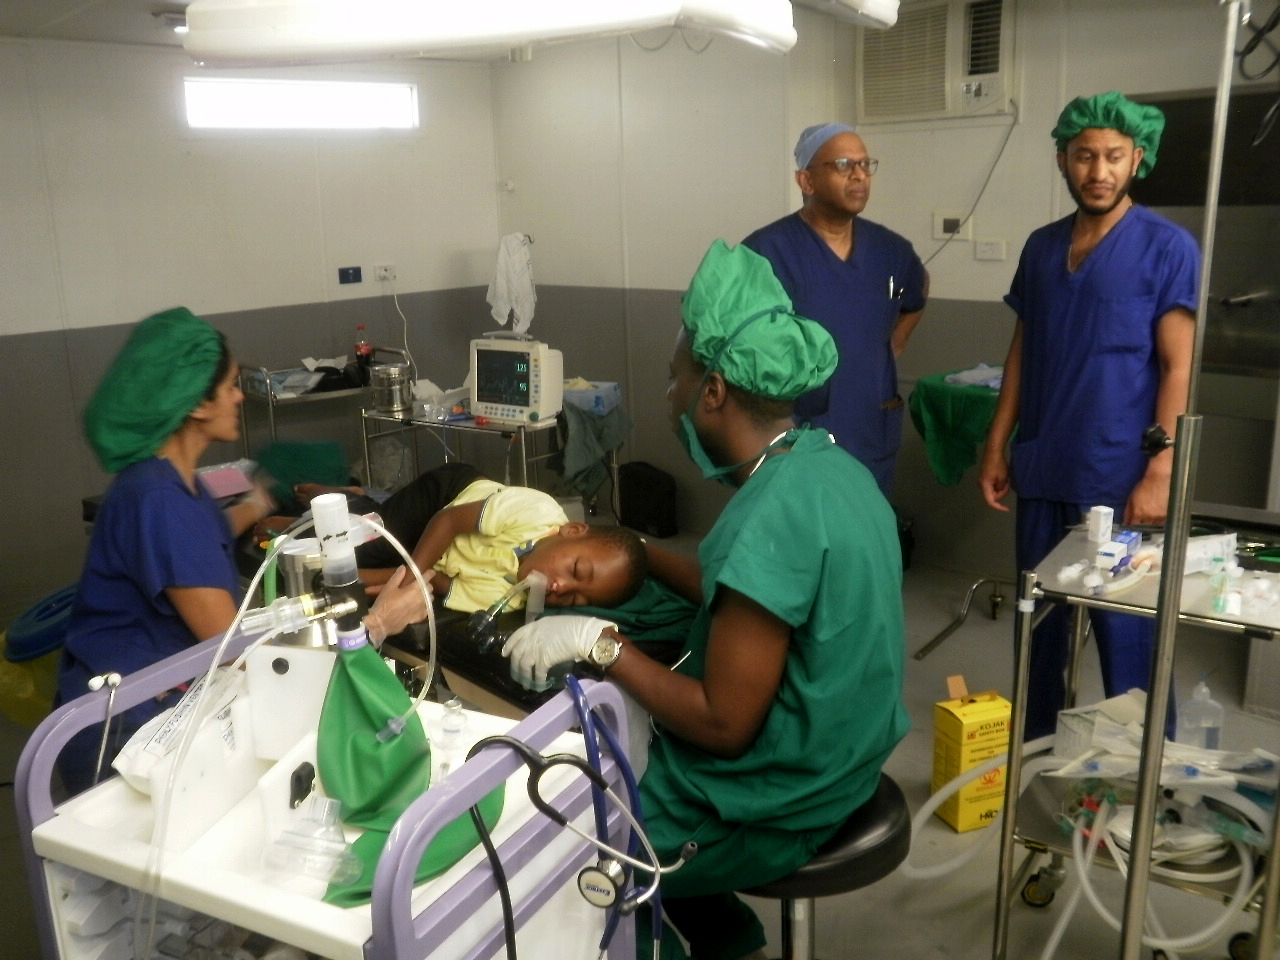 Surgical team at work